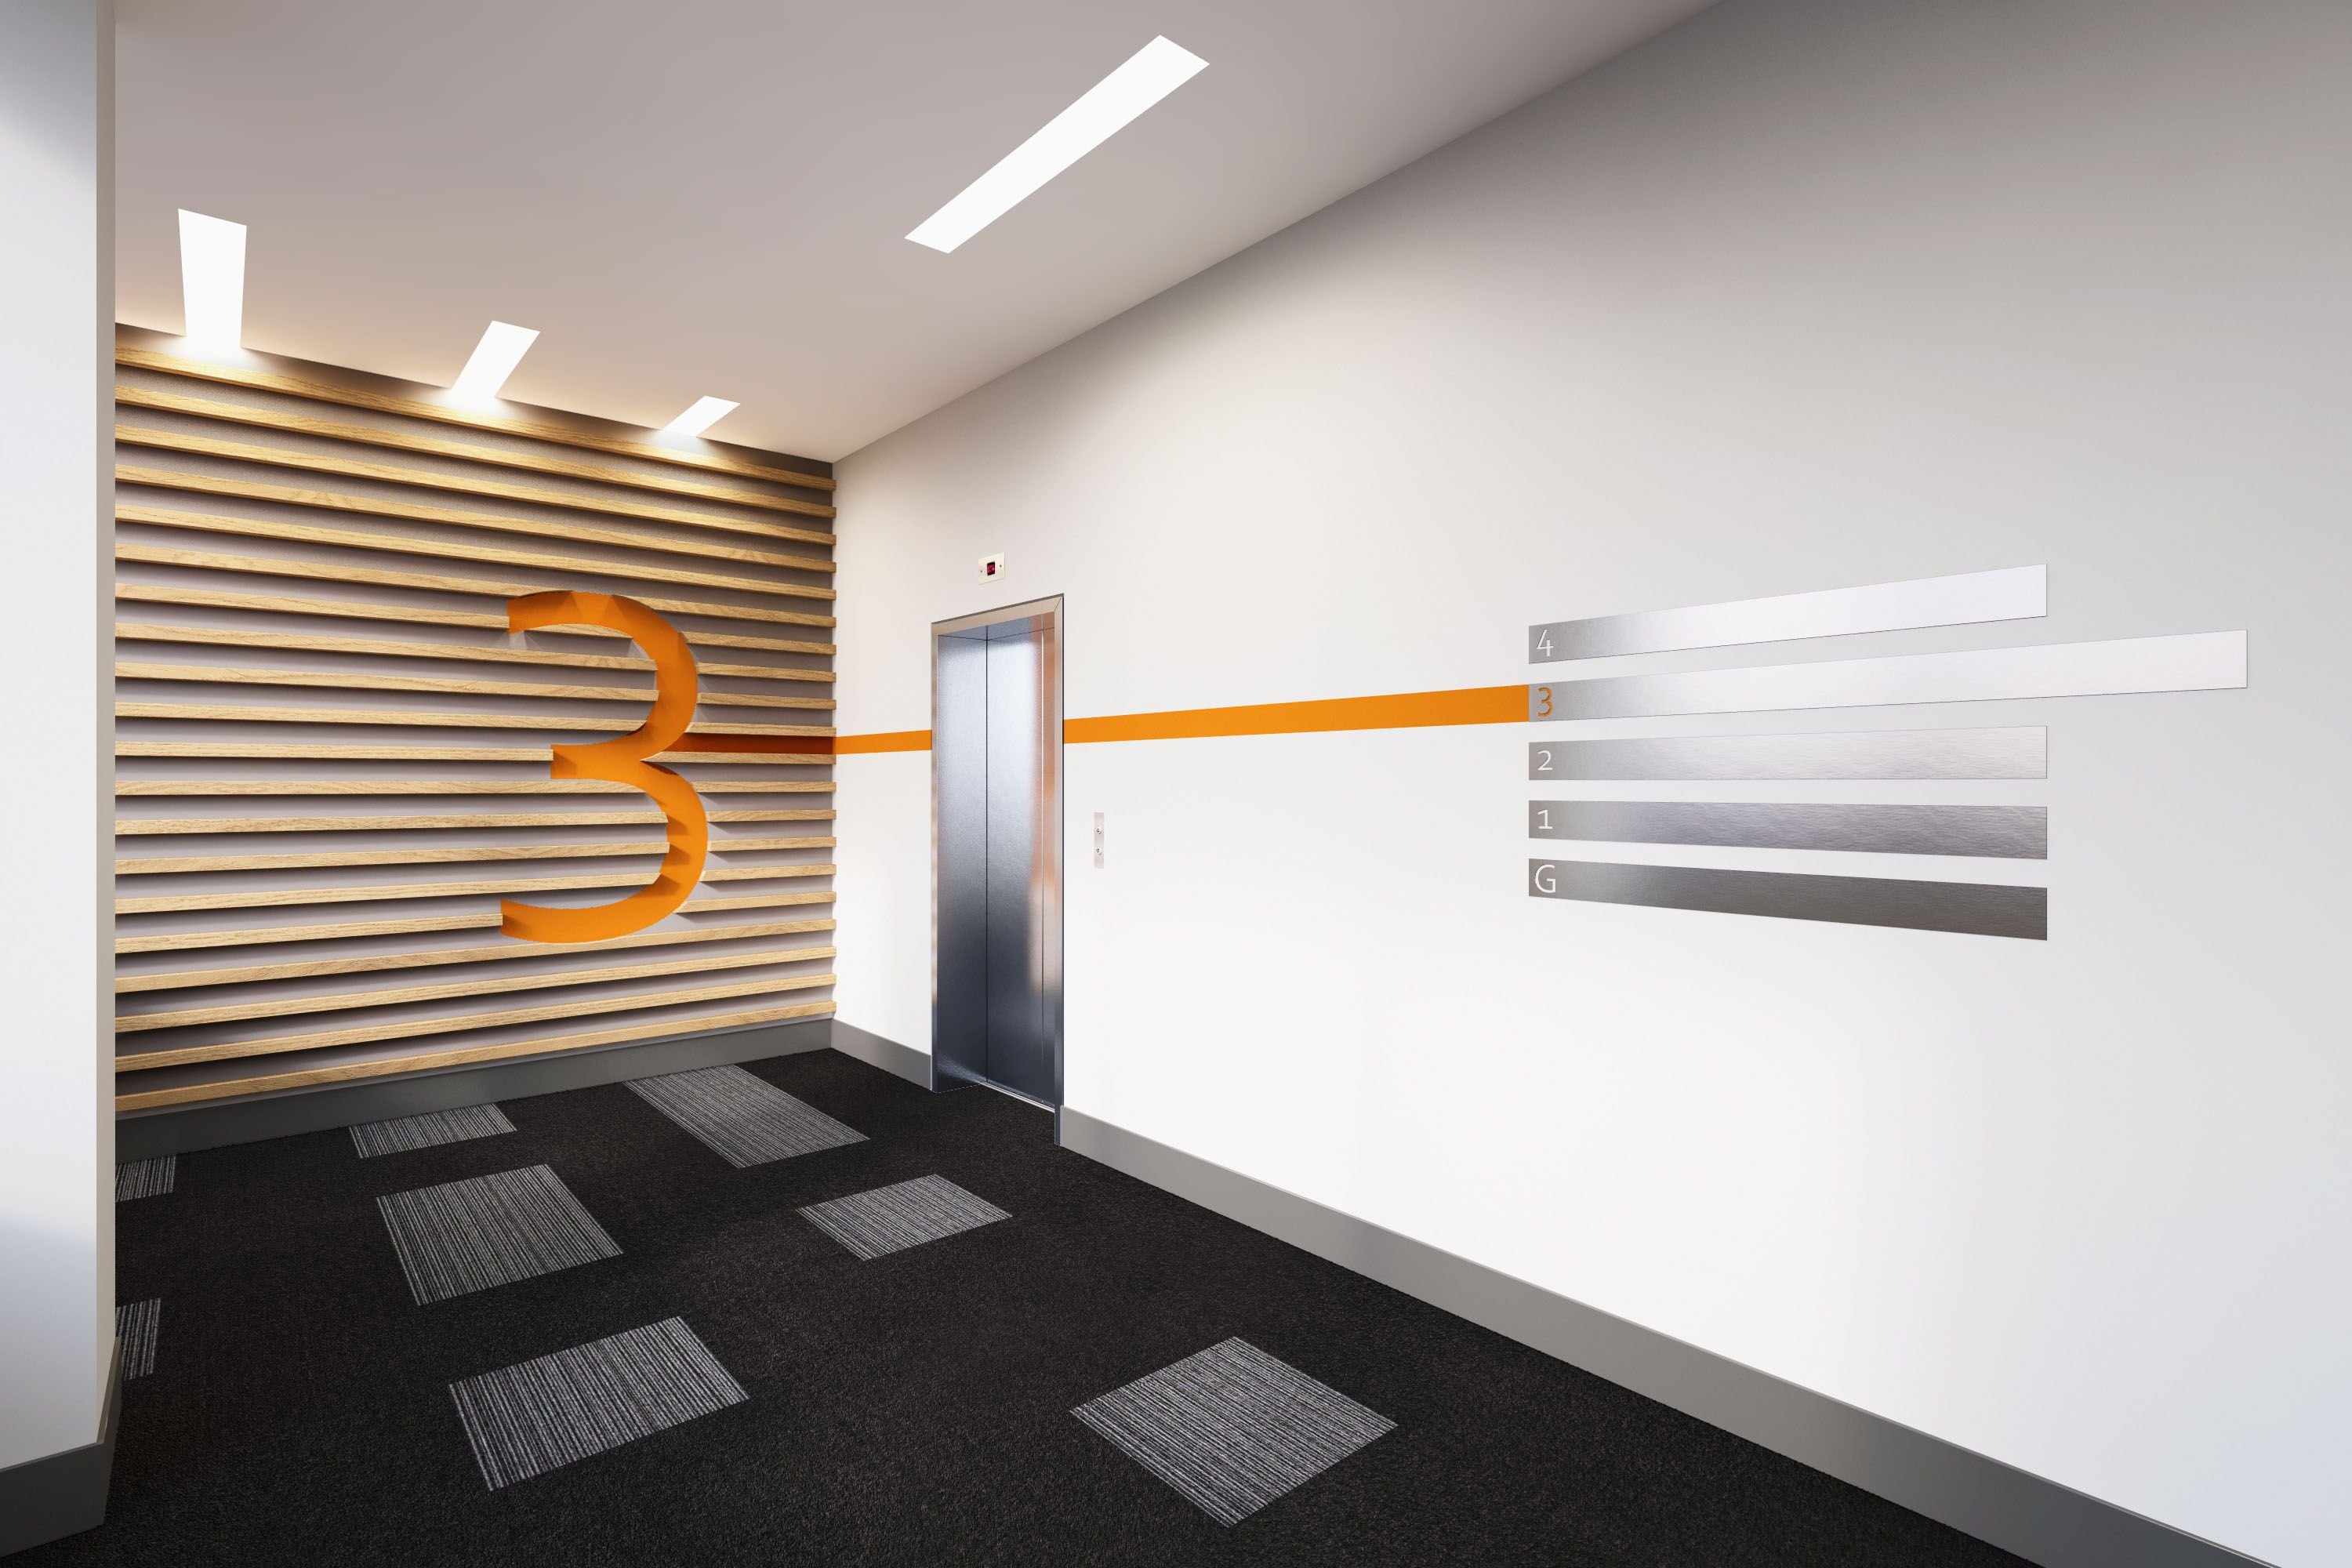 Crave ID. Queens Dock. Lift lobby. Way finding